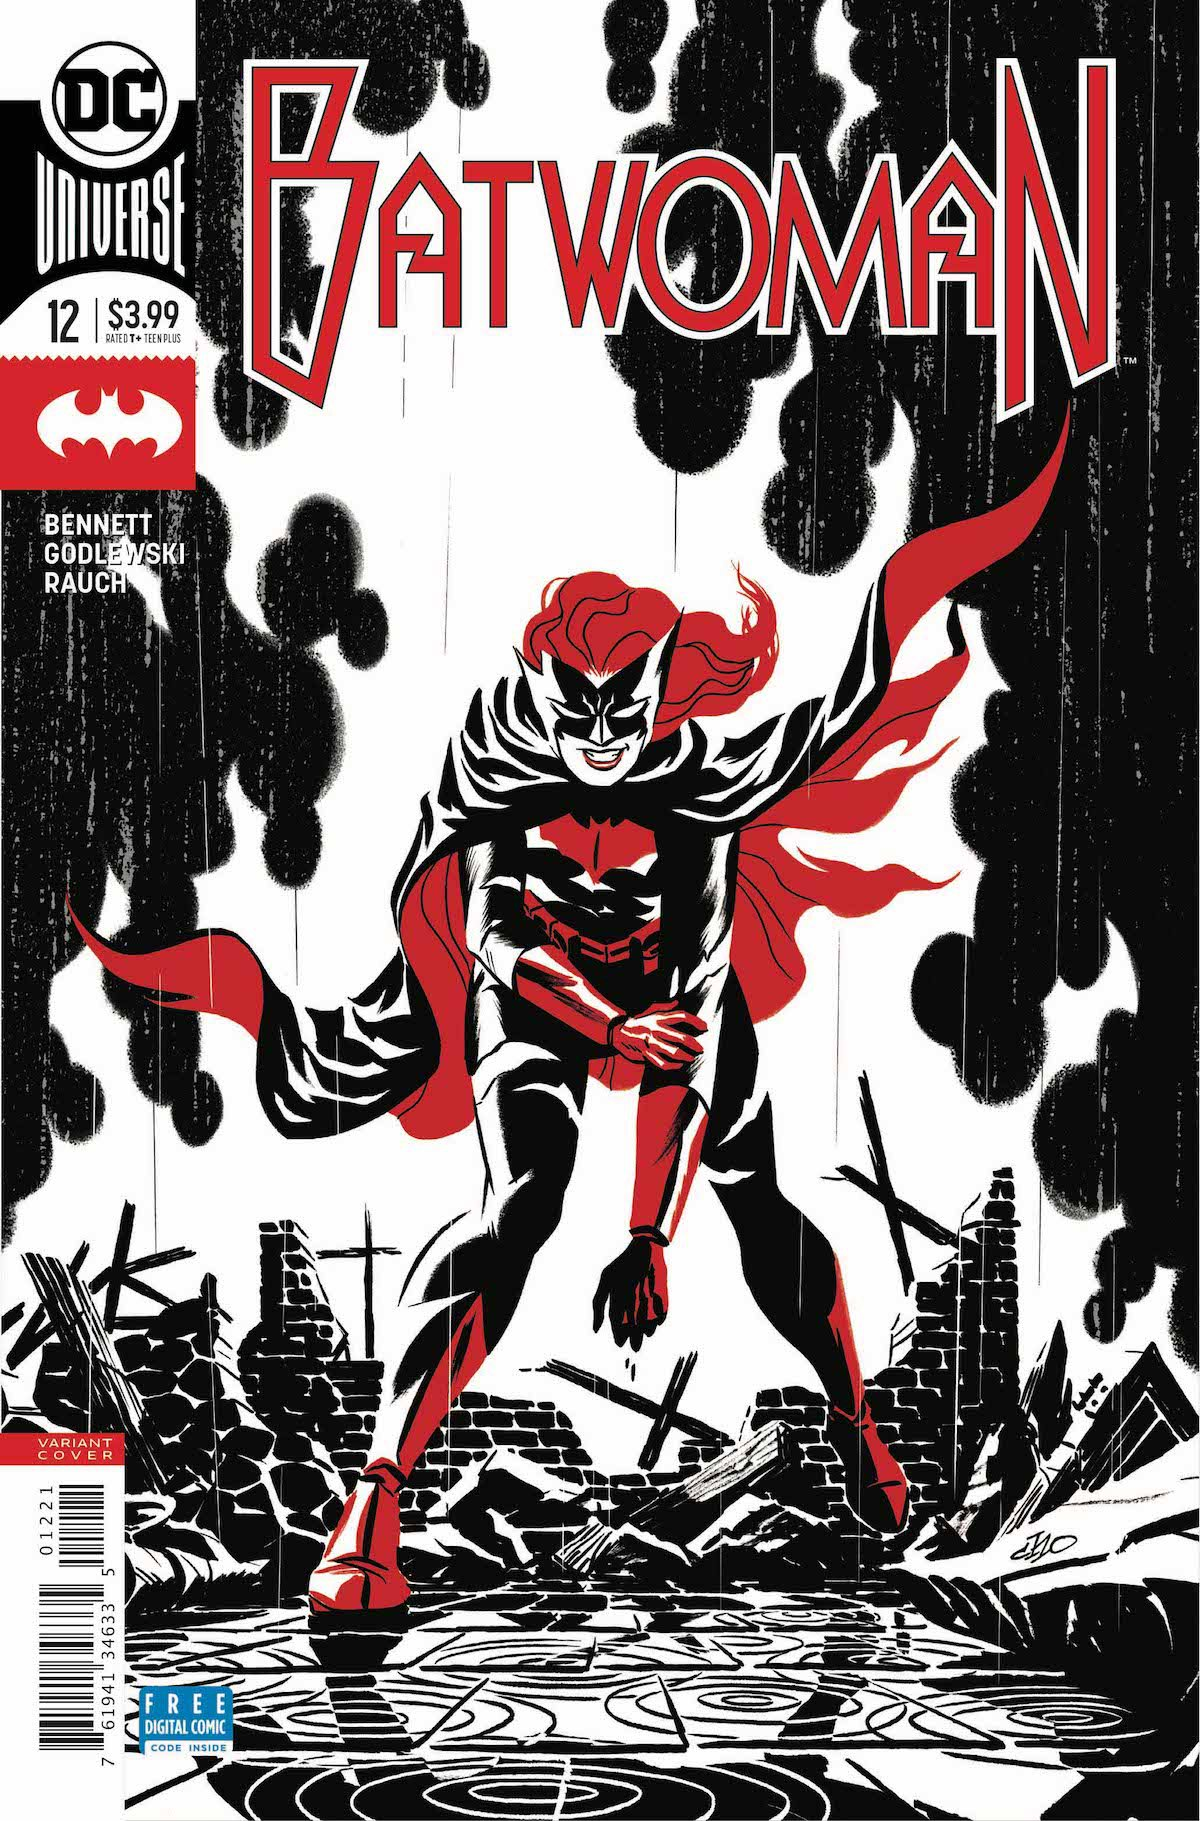 Batwoman #12 variant cover